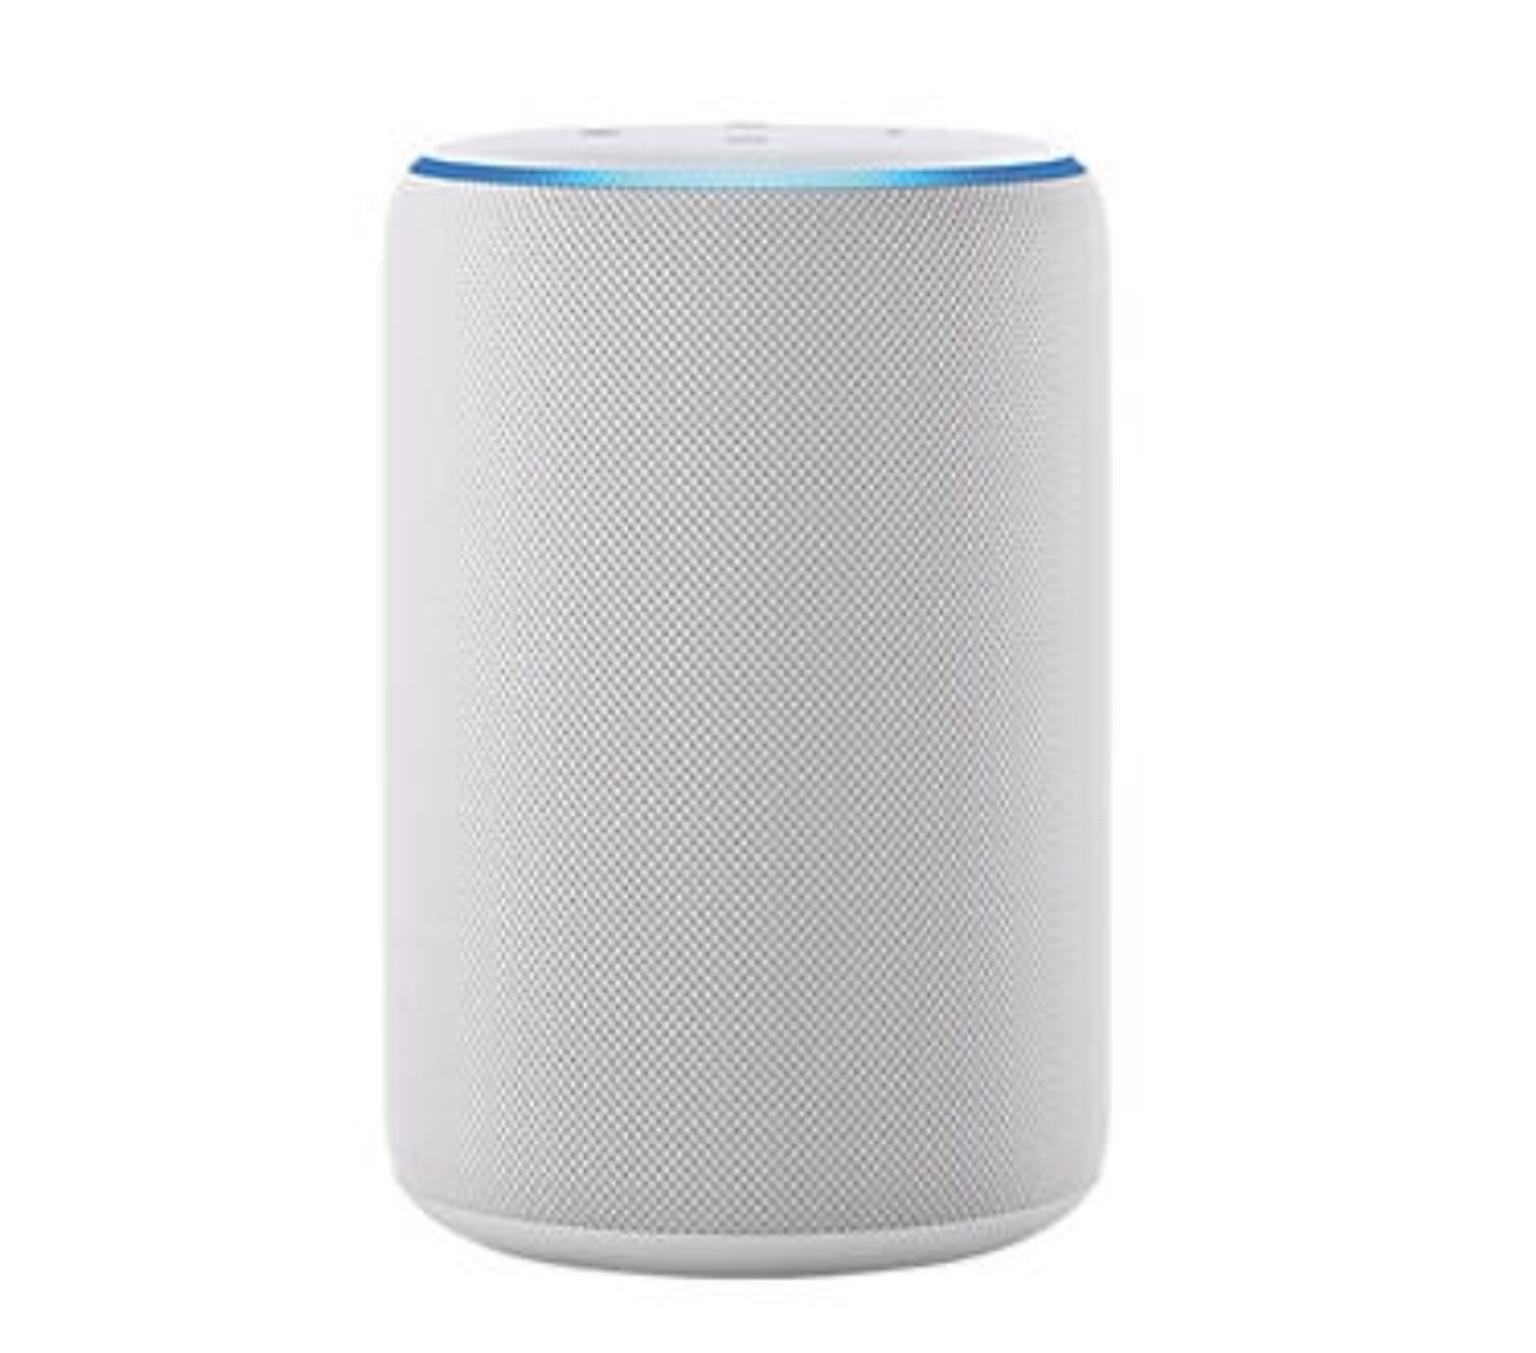 New Amazon Echo Plus In White Sandstone In Rotherham For 99 99